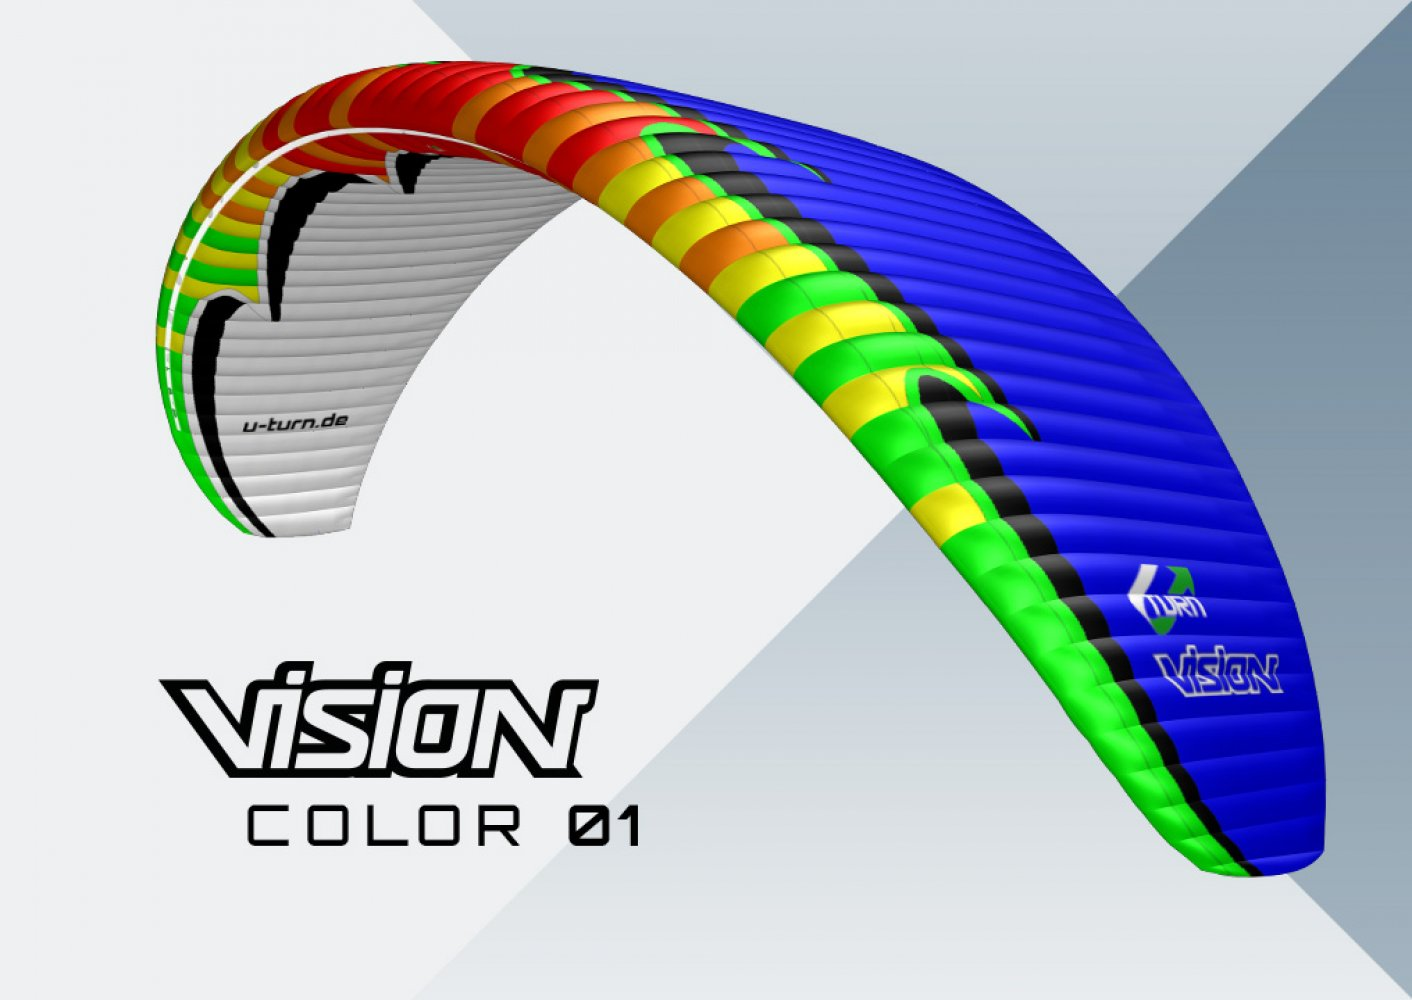 image_manager__full_width_u-turn-vision-colors-01